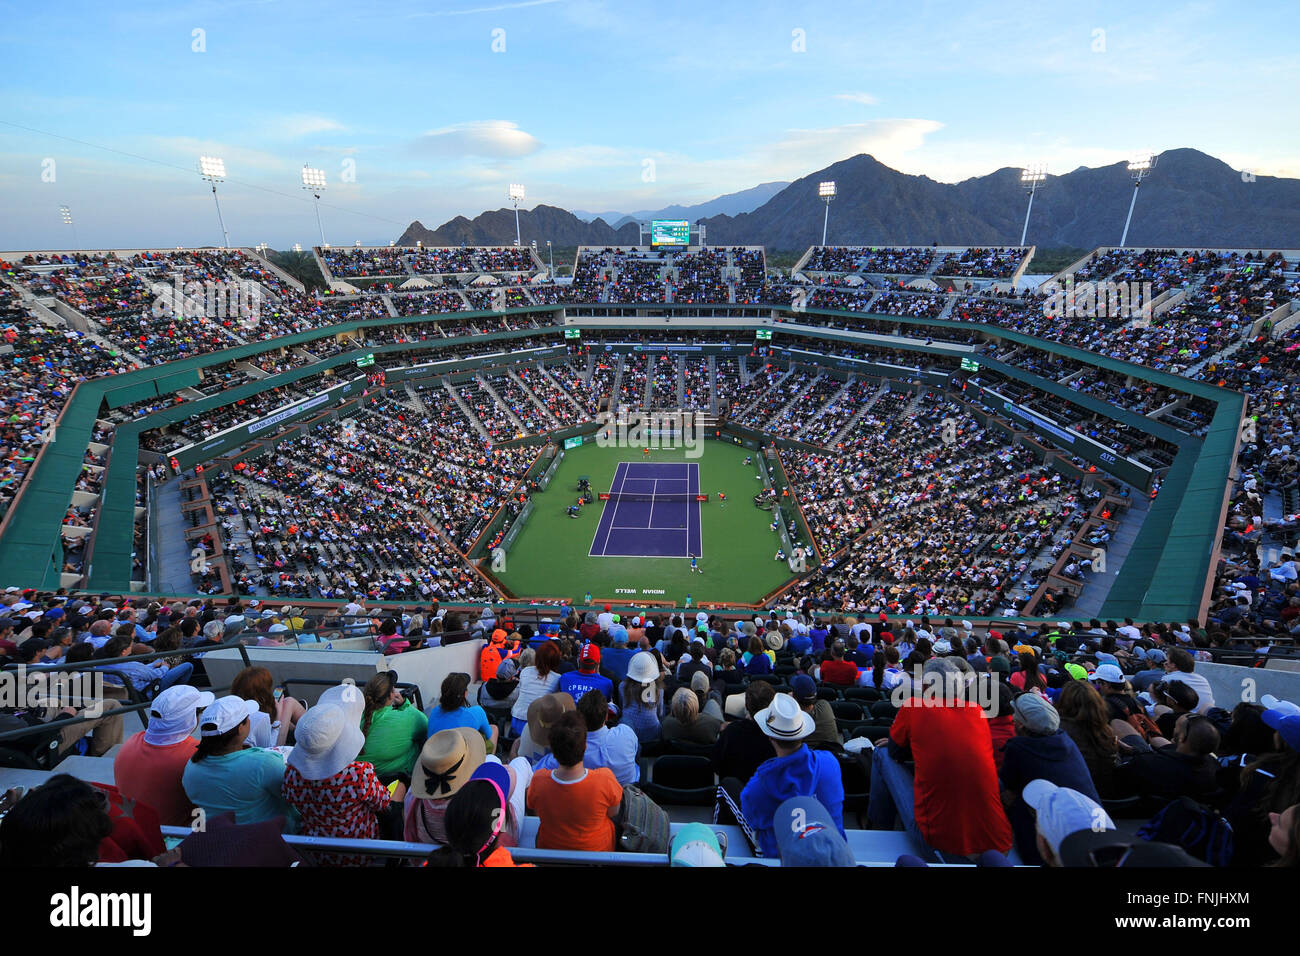 indian wells tennis stock photos indian wells tennis stock images alamy. Black Bedroom Furniture Sets. Home Design Ideas